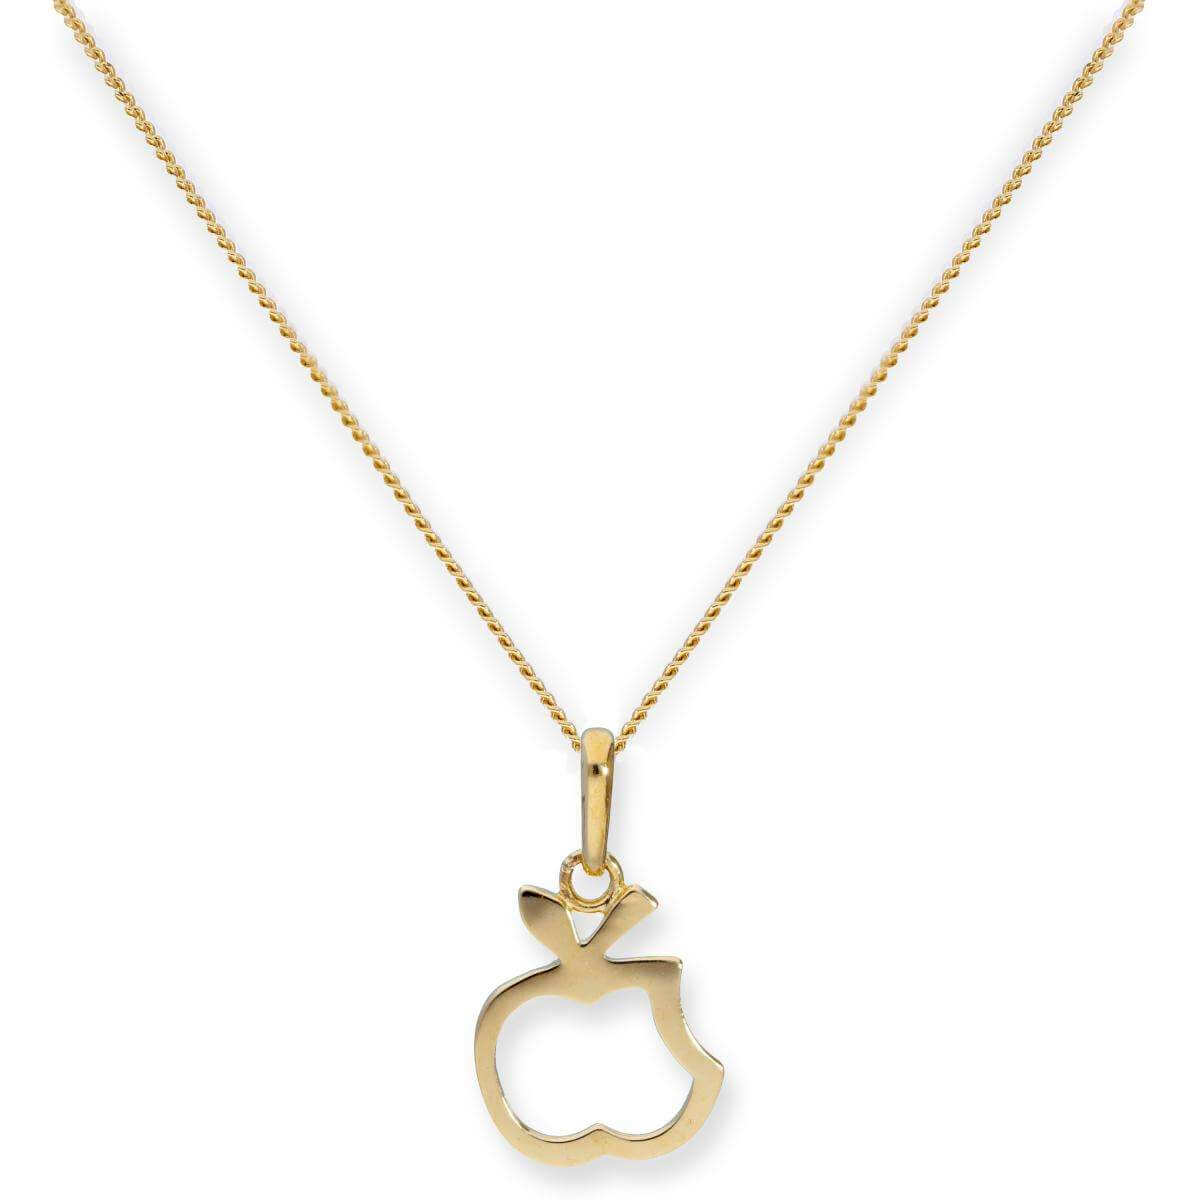 9ct Gold Bitten Apple Outline Pendant Necklace 16 - 20 Inches